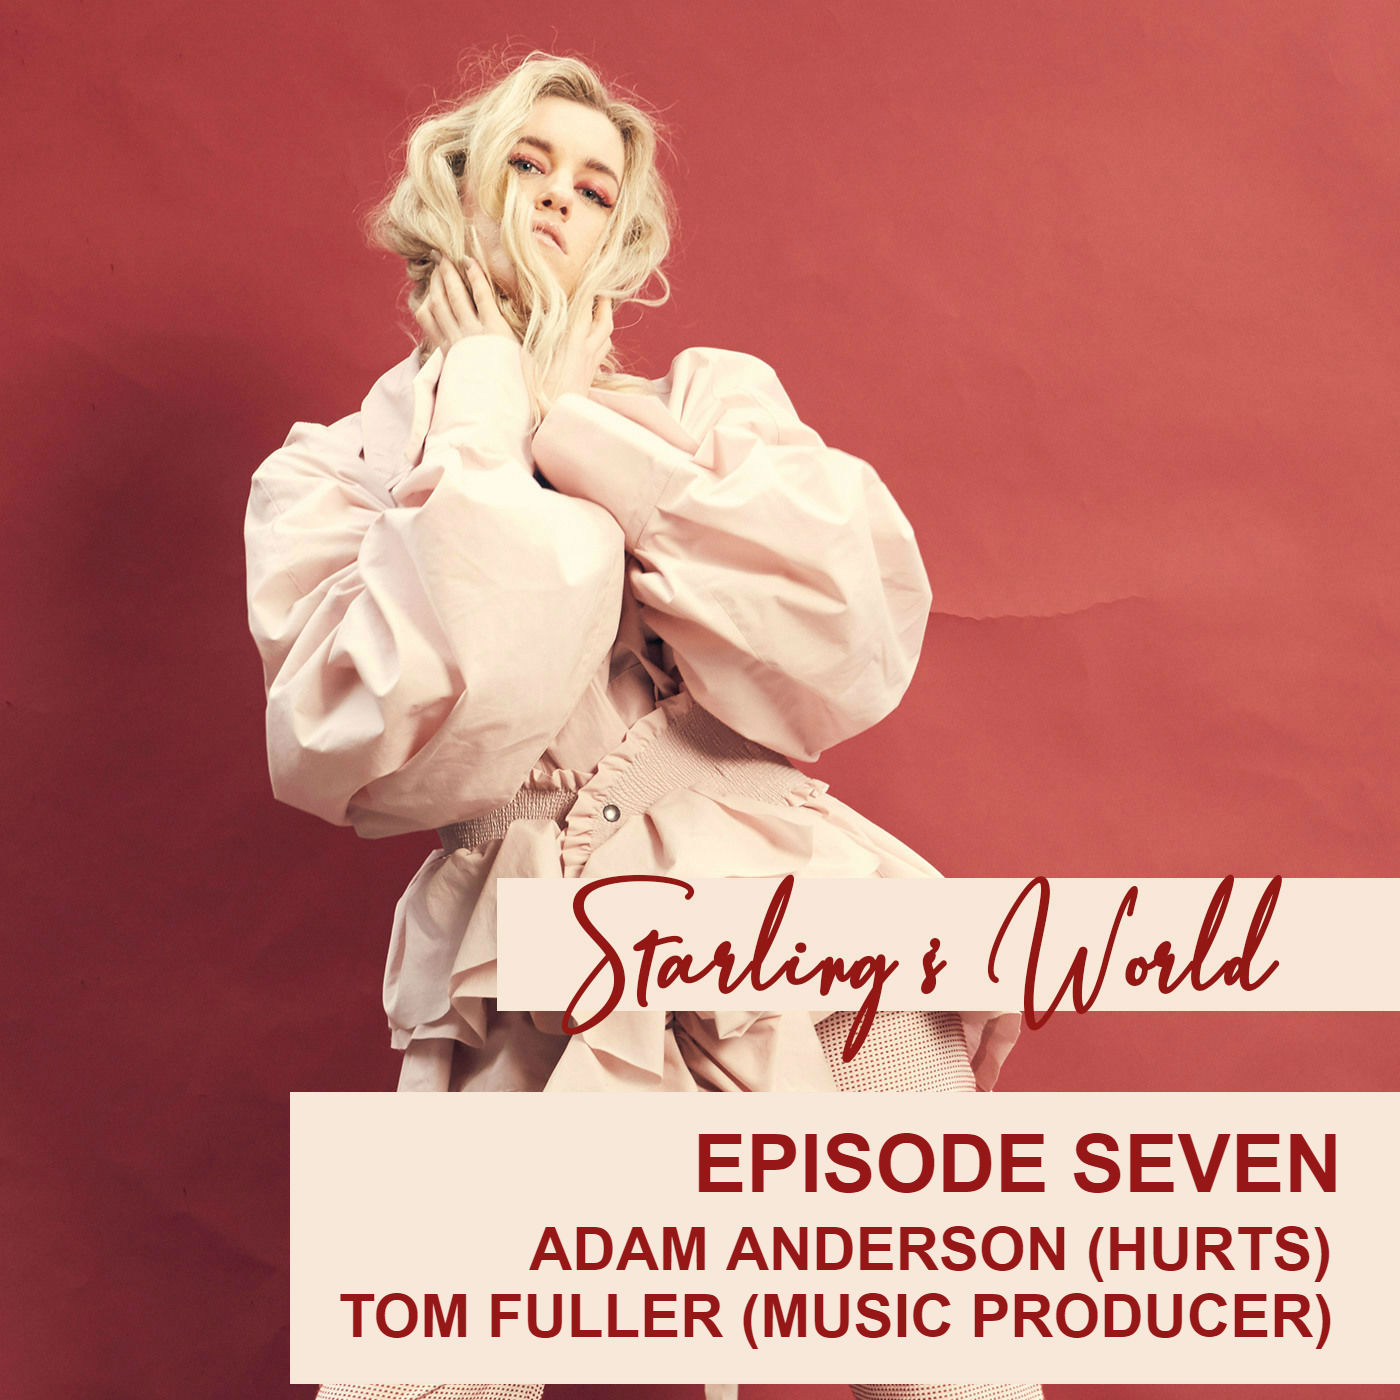 Starling's World meets Adam Anderson (Hurts) and music producer Tom Fuller - Episode 7